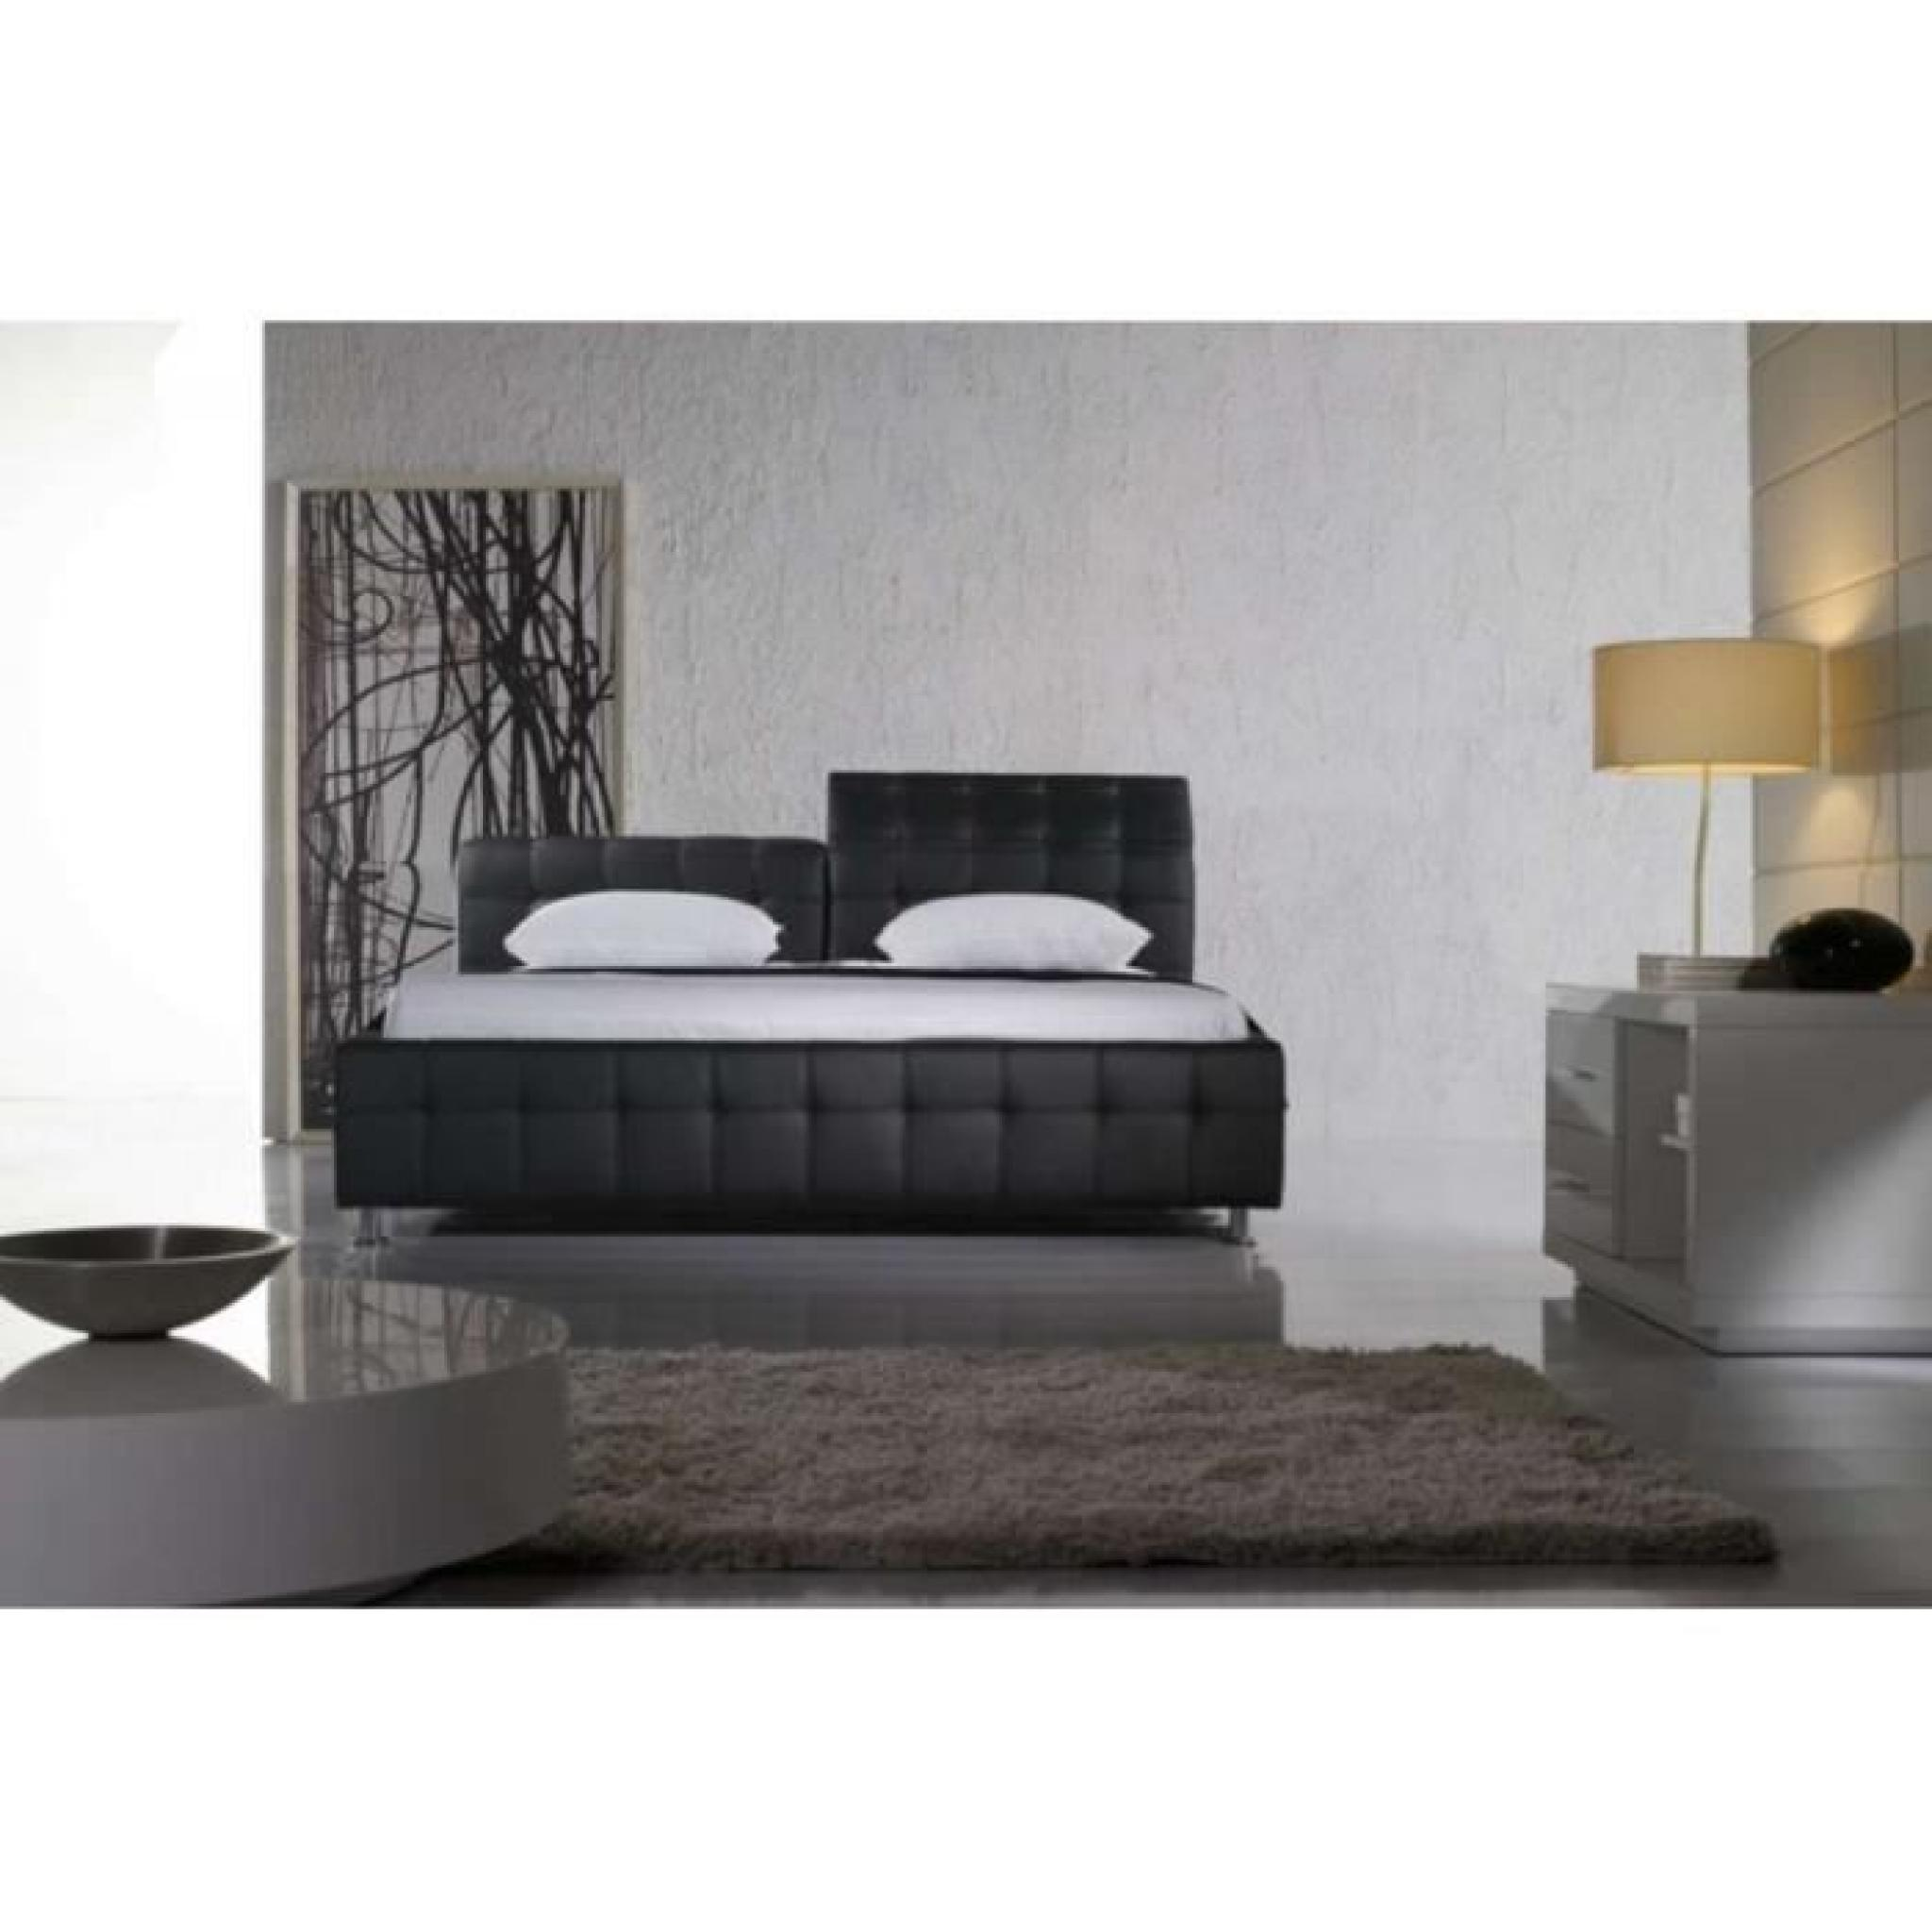 lit 160 x 200 pas cher maison design. Black Bedroom Furniture Sets. Home Design Ideas